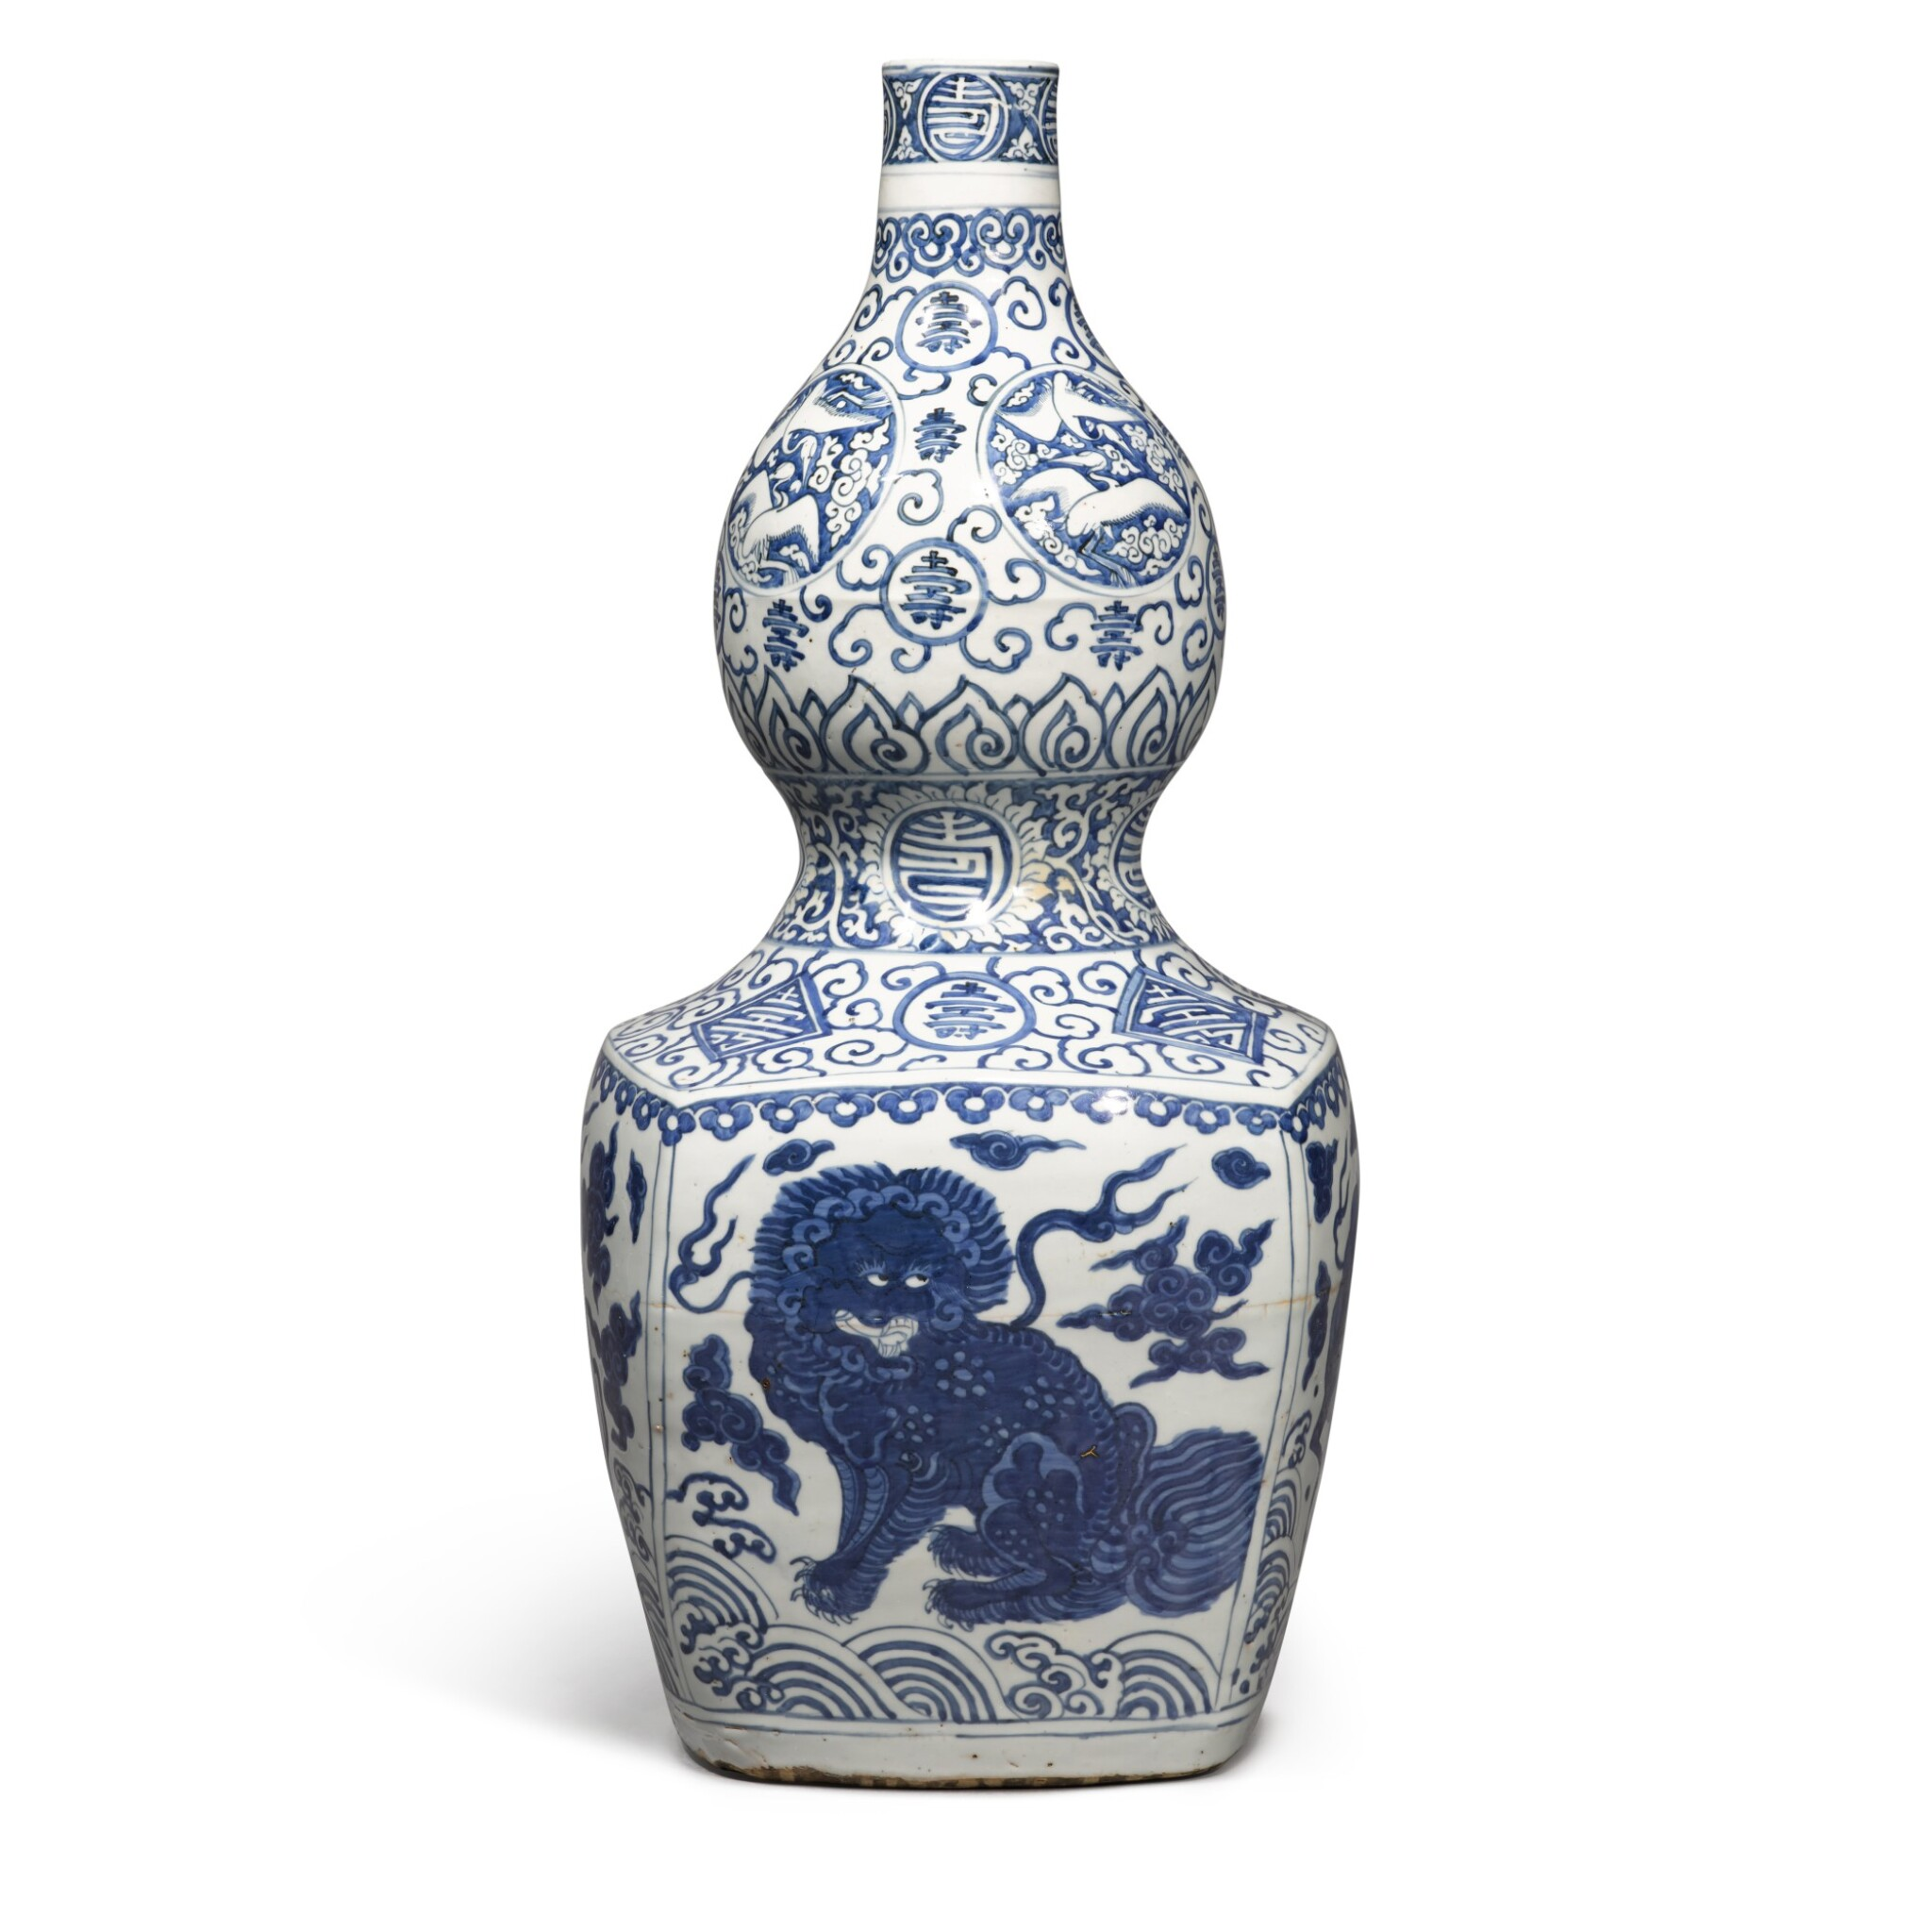 View full screen - View 1 of Lot 84. A large blue and white 'double-gourd' vase, Ming dynasty, Jiajing period | 明嘉靖 青花瑞獸壽字紋大葫蘆瓶.